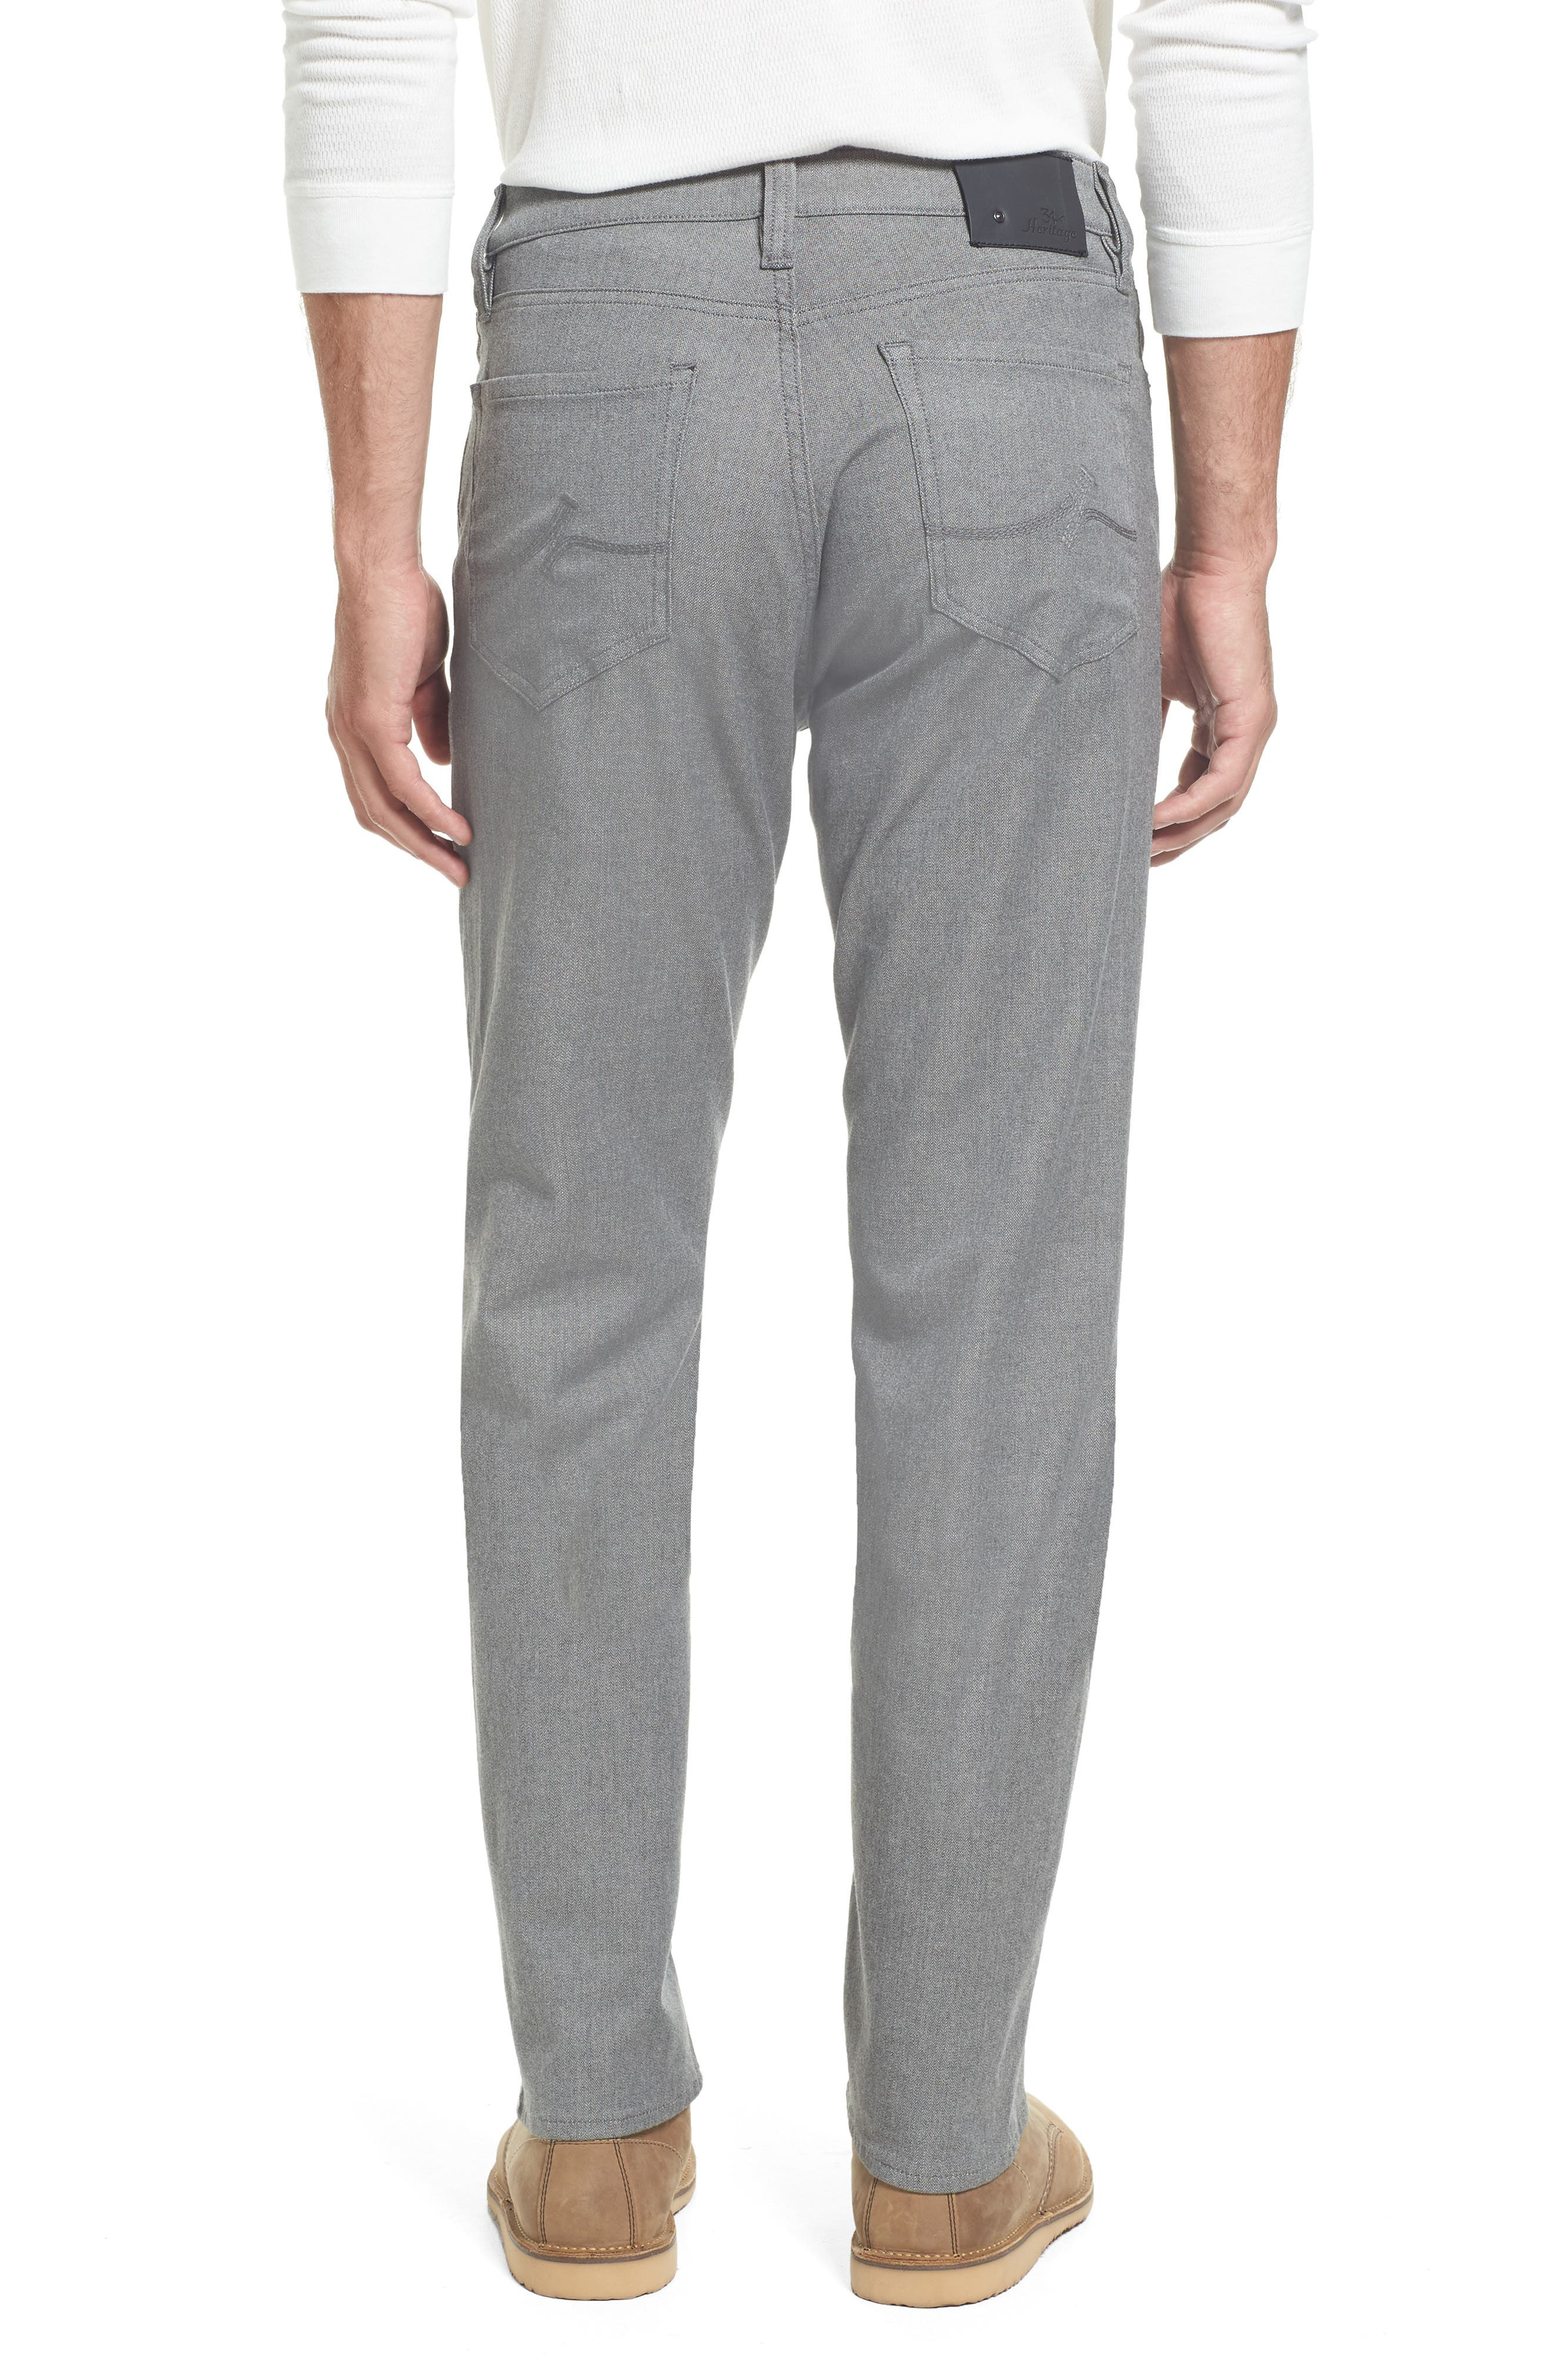 Charisma Relaxed Fit Jeans,                             Alternate thumbnail 2, color,                             020